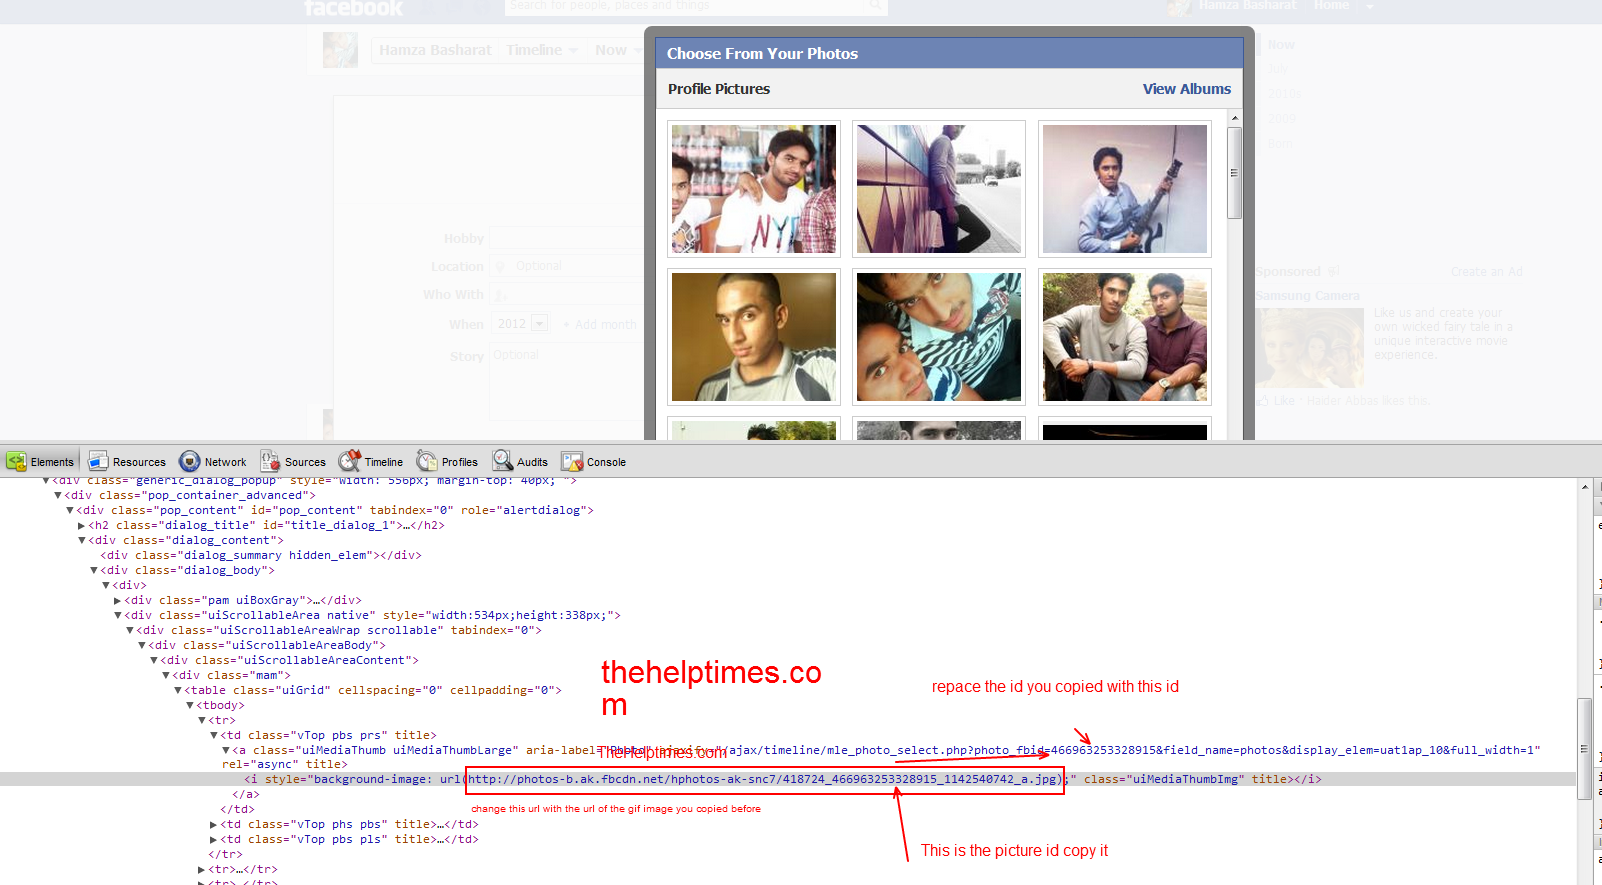 How To Upload Animated GIFS In Your Facebook Account